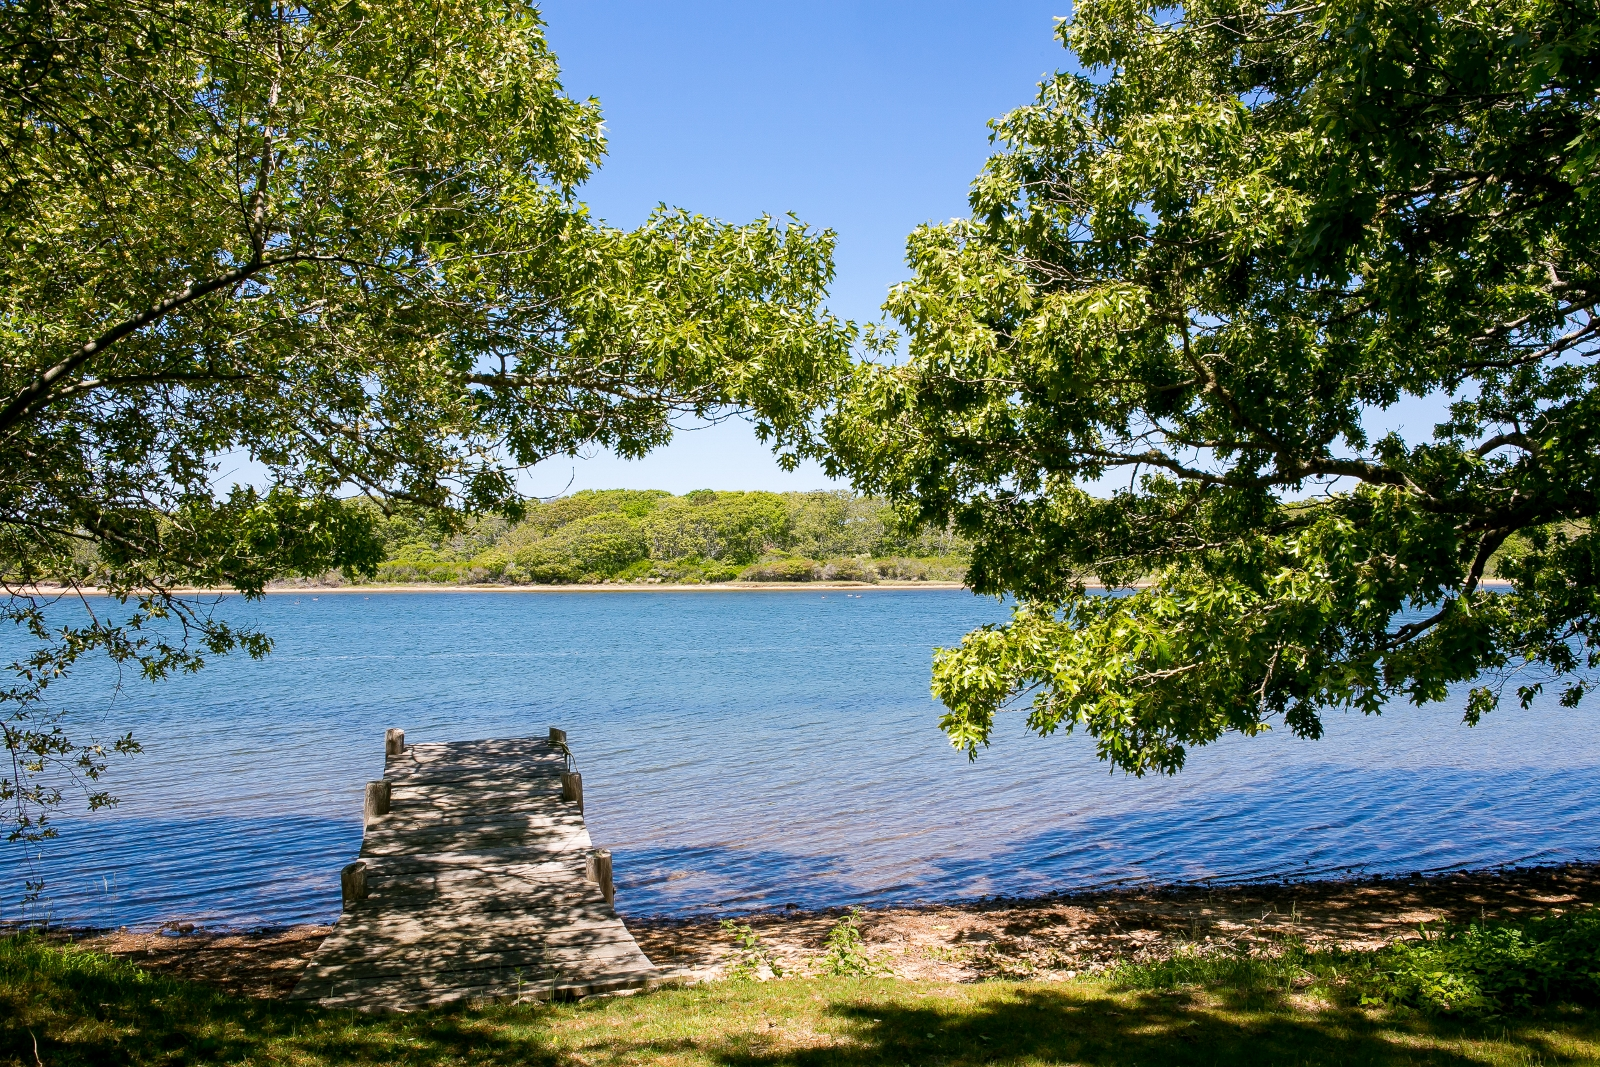 단독 가정 주택 용 매매 에 A serene retreat on Edgartown Great Pond 82 Turkeyland Cove Edgartown, 매사추세츠, 02539 미국